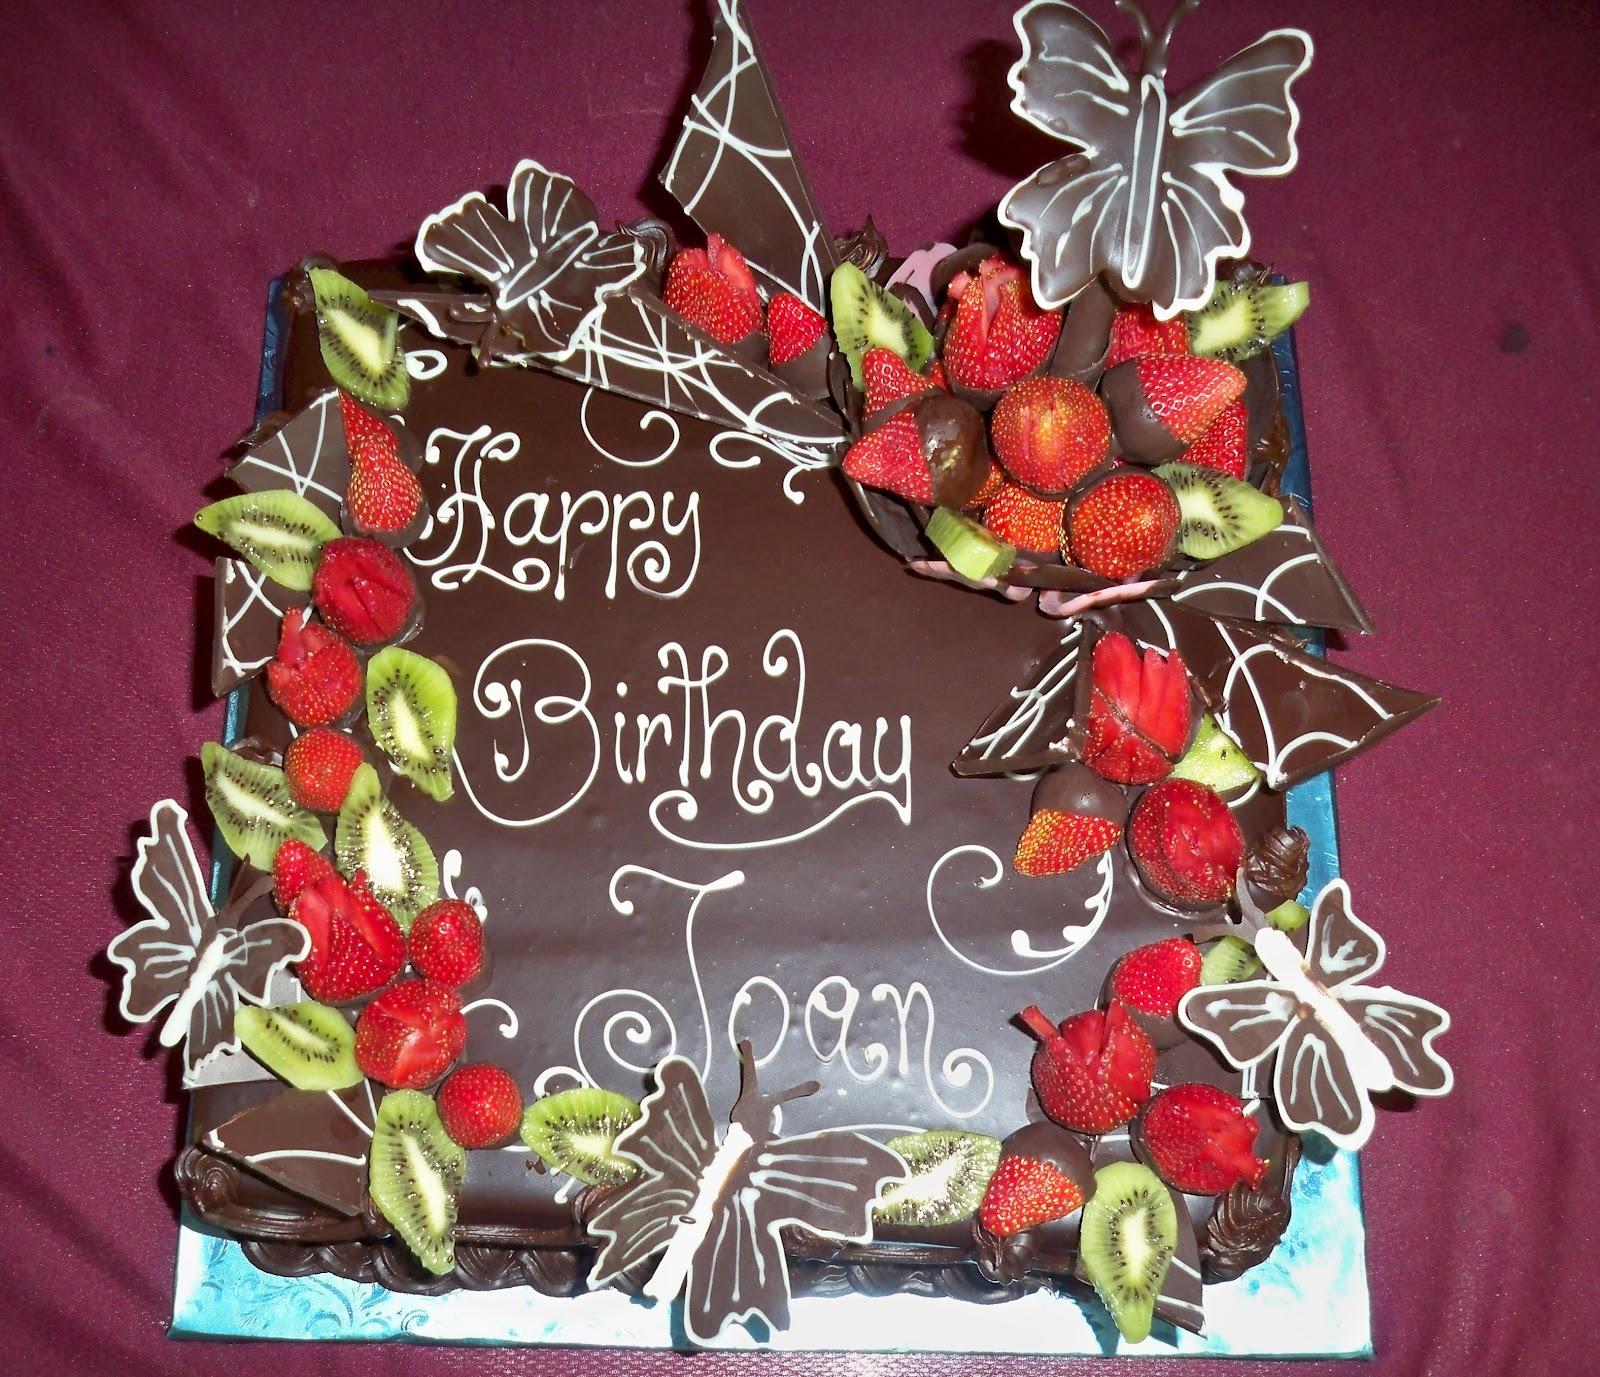 Chocolate Birthday Cakes With Butterflies Strawberries Flowers And More